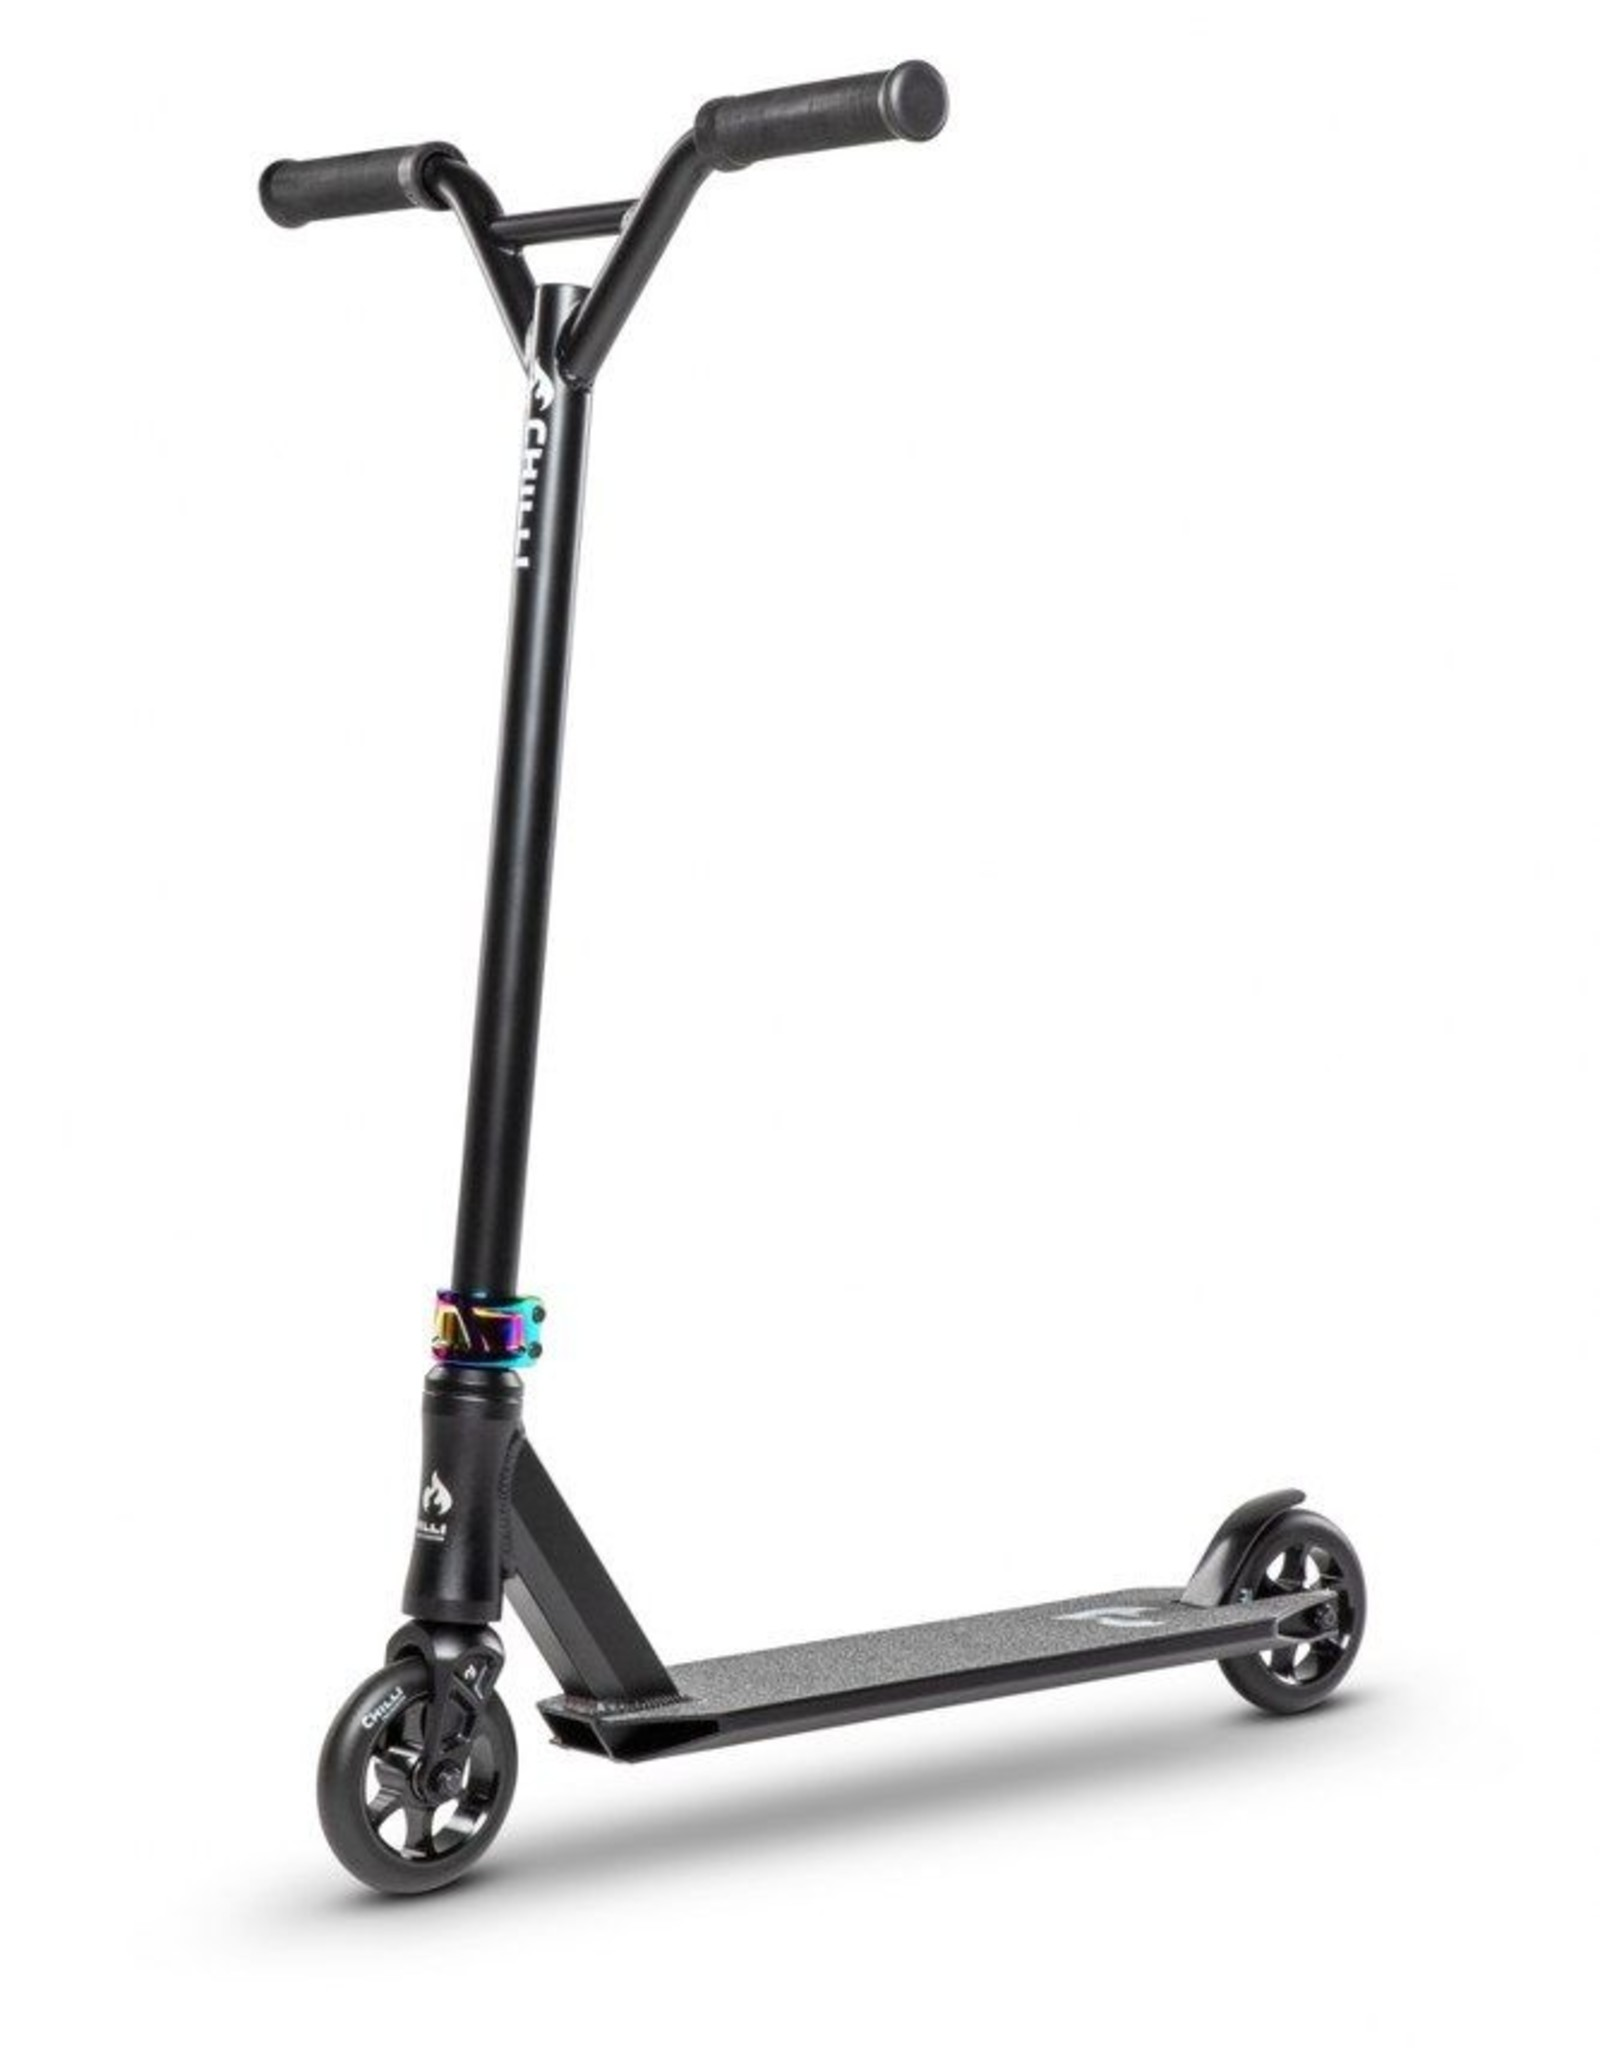 Chilli Pro Step/Scooter  5000 110MM Black/Neochrome Clamp